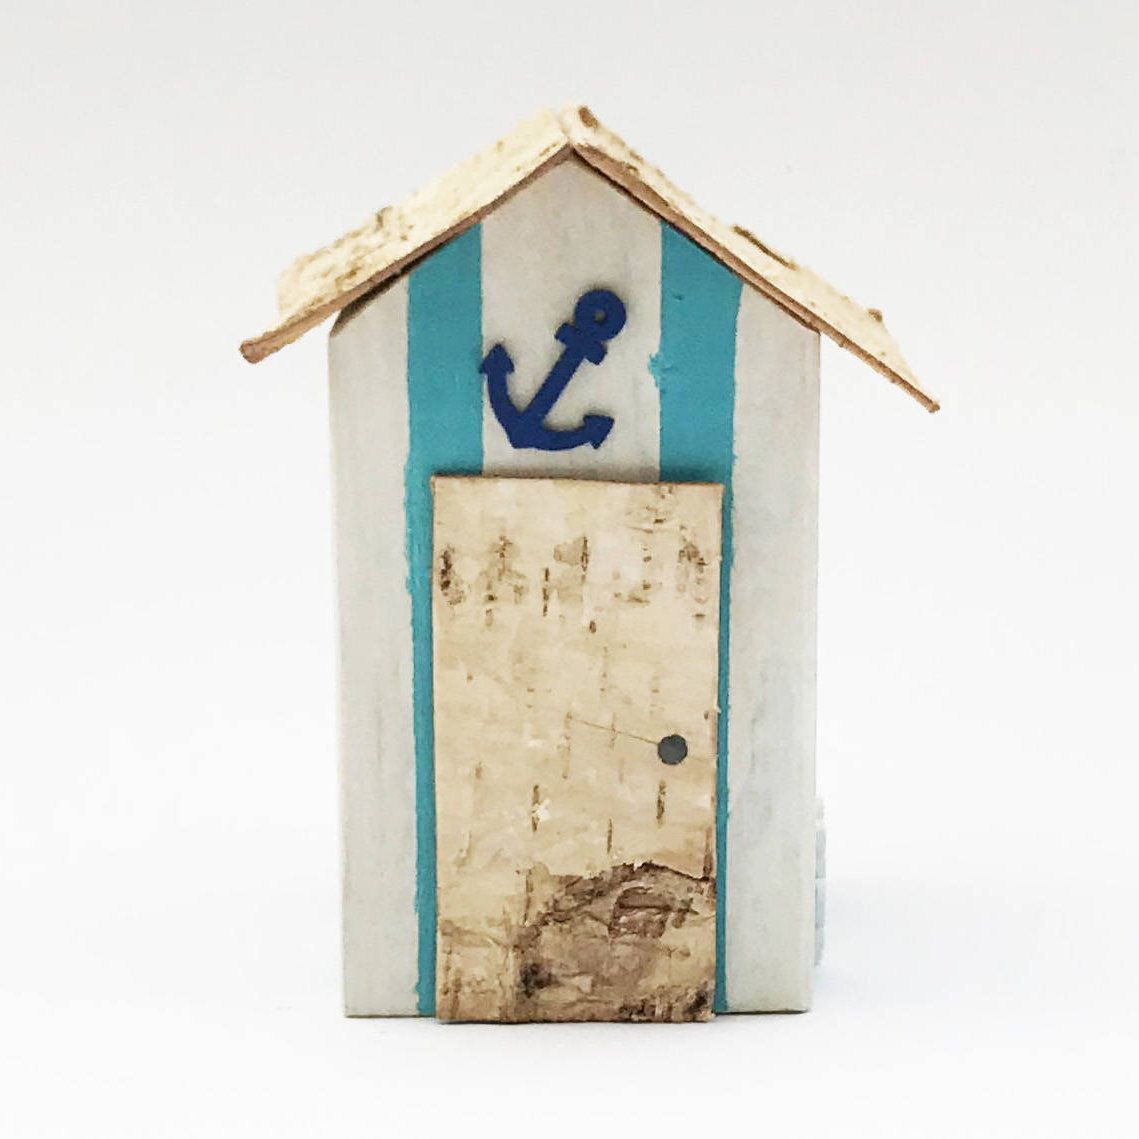 Beach Hut Ornament Bathroom Accessories Nautical Coastal Etsy In 2020 Beach Bathroom Decor Beach Hut Bathroom Beach Hut